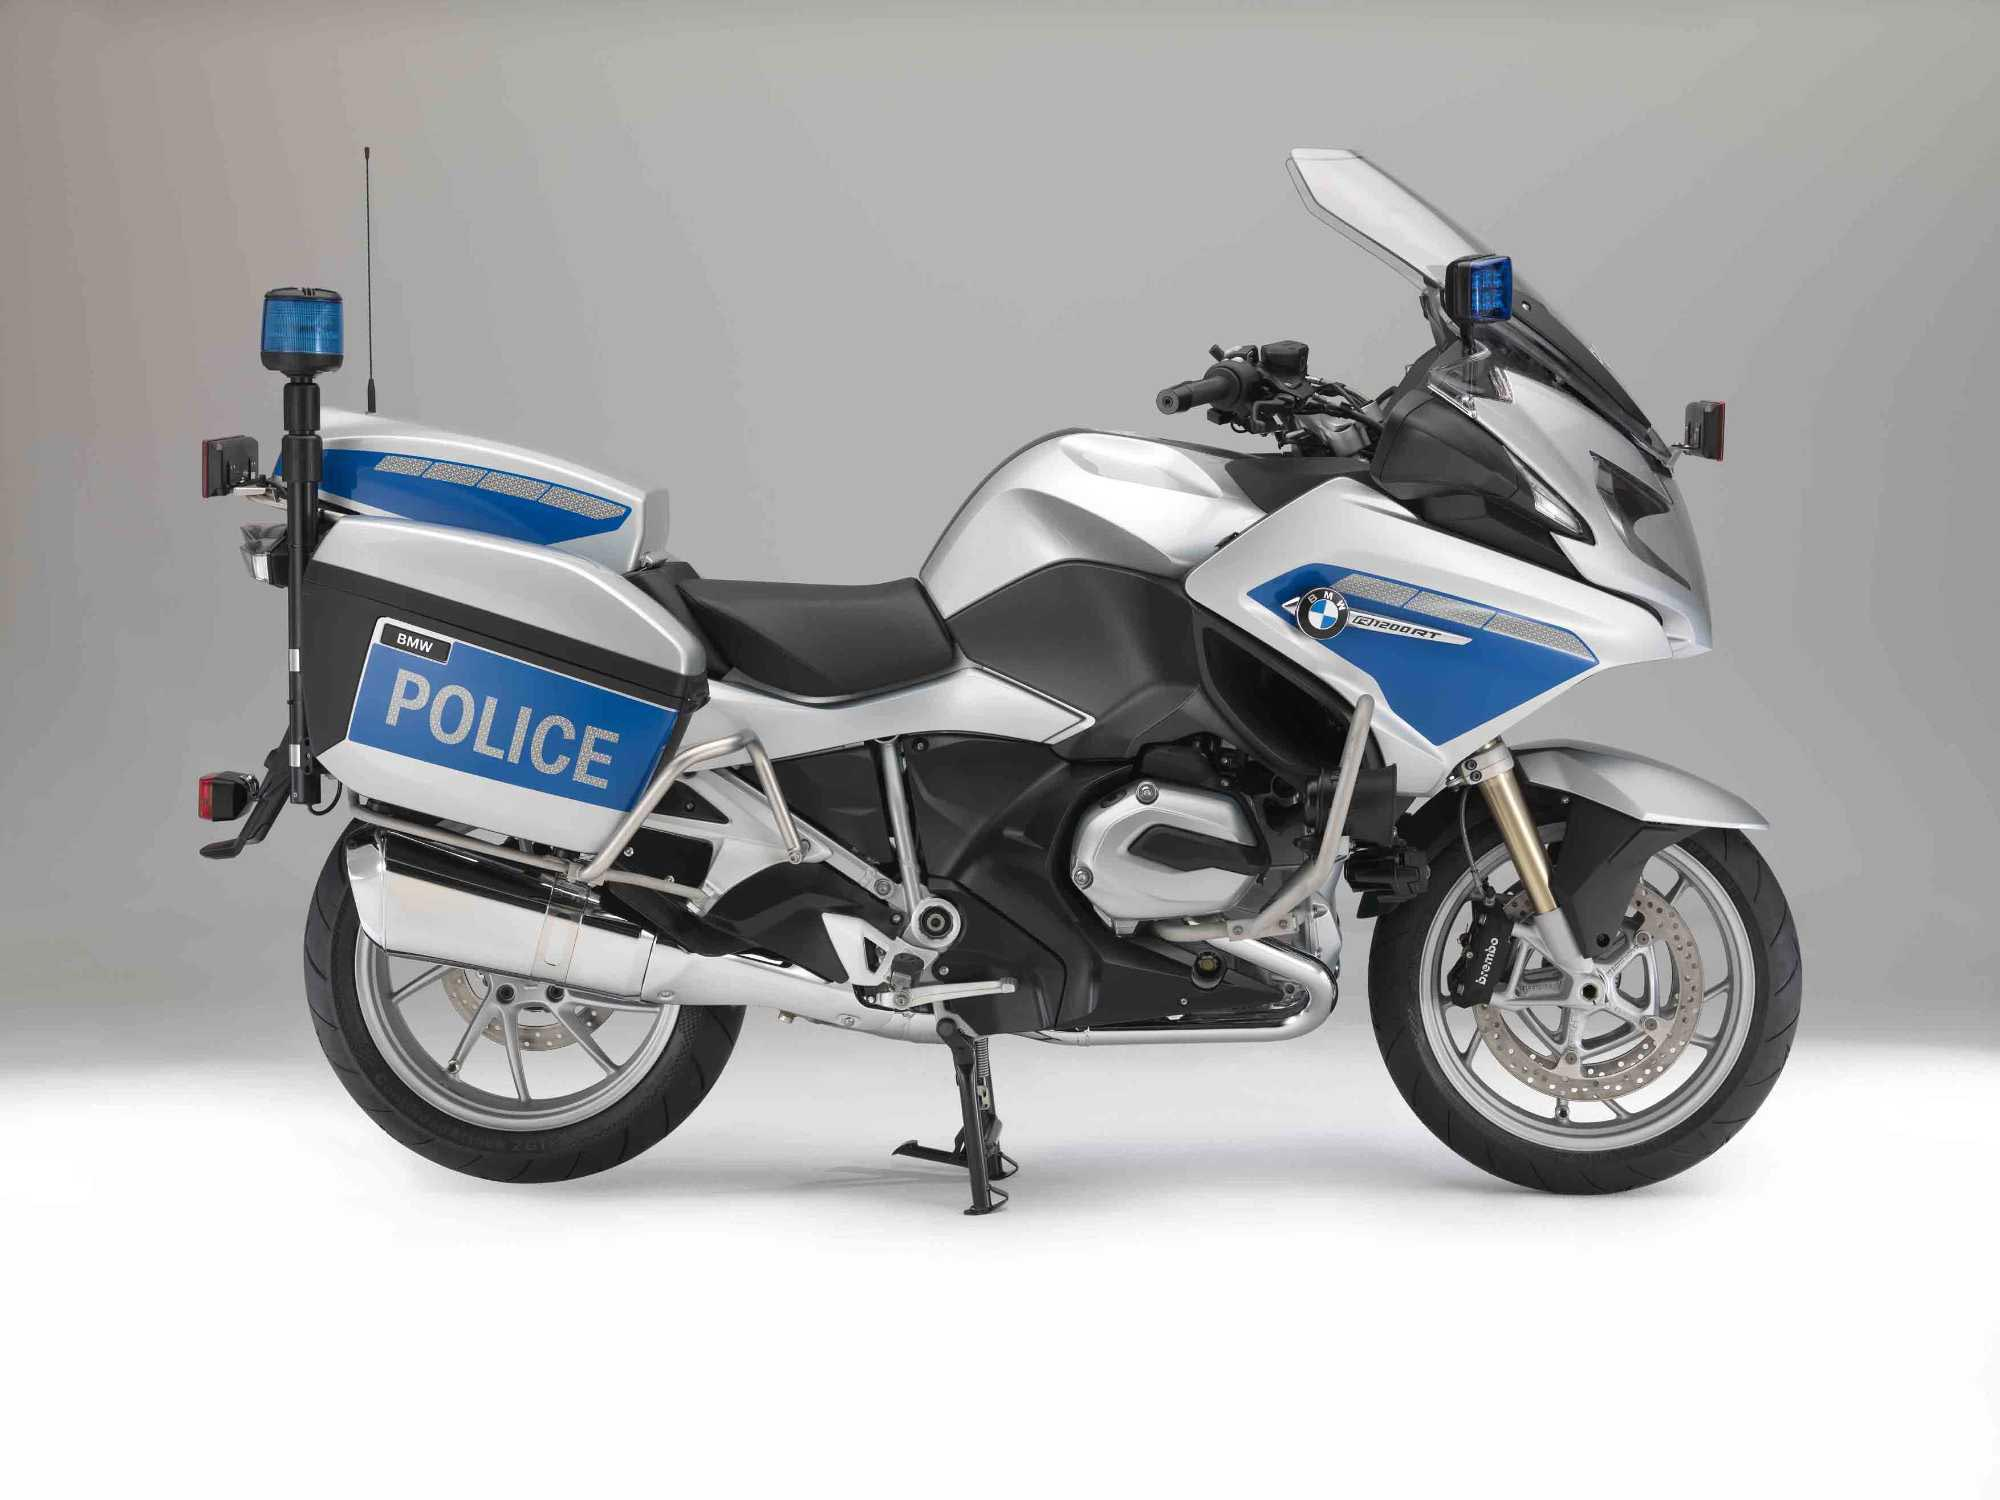 Recall: BMW R1200RT Police Bike - Asphalt & Rubber